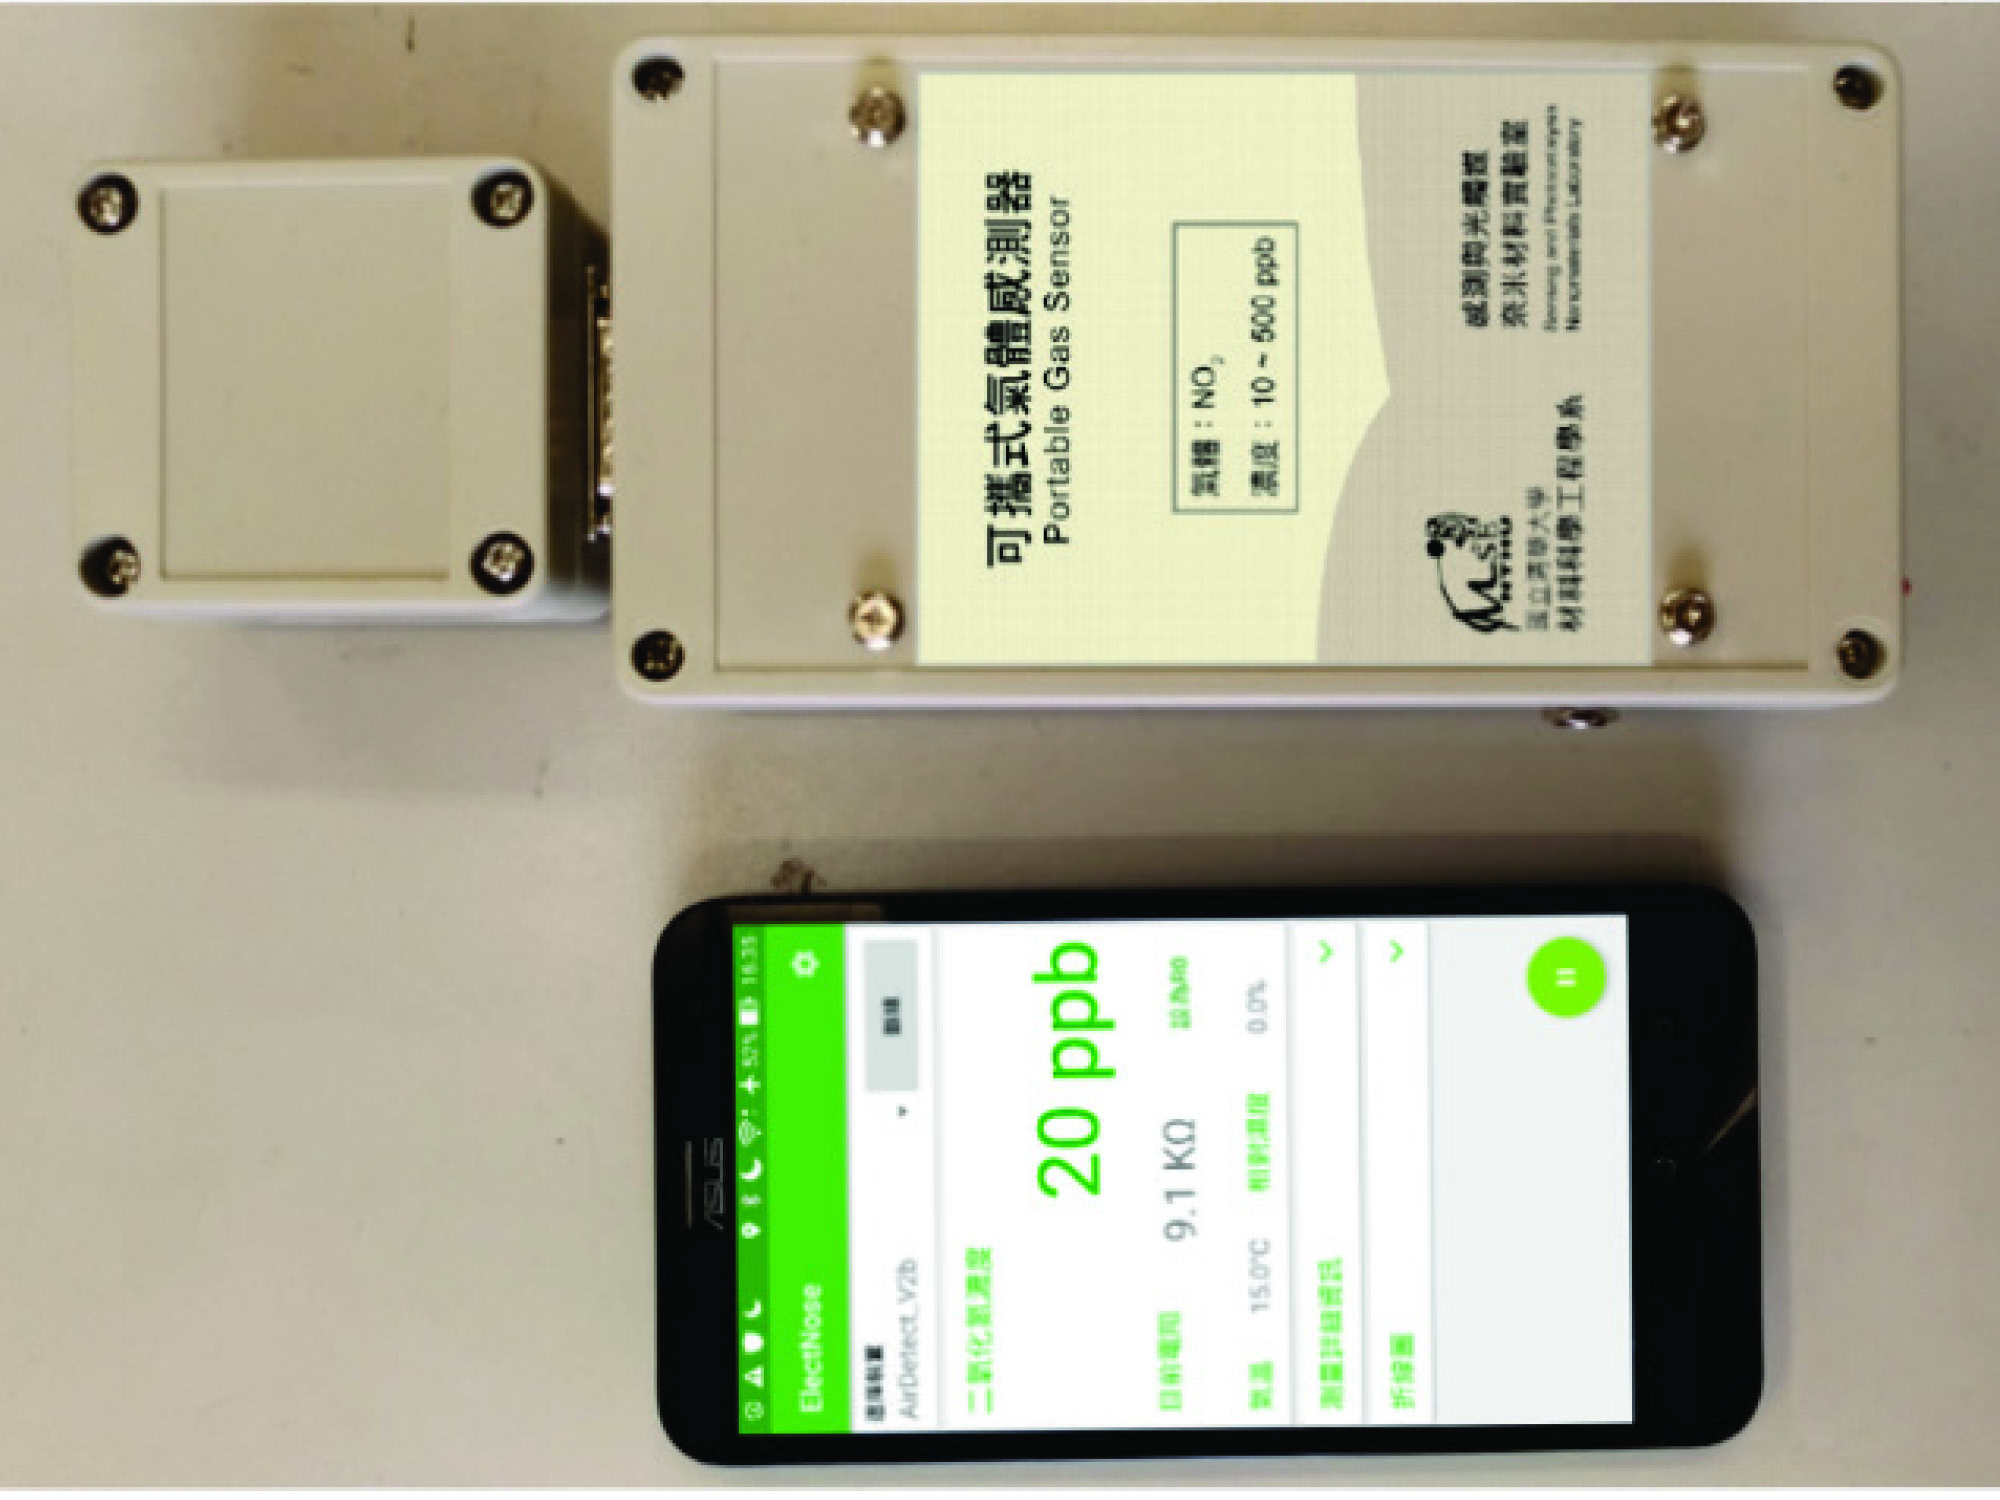 Smart phone operated portable nitrogen dioxide gas sensor